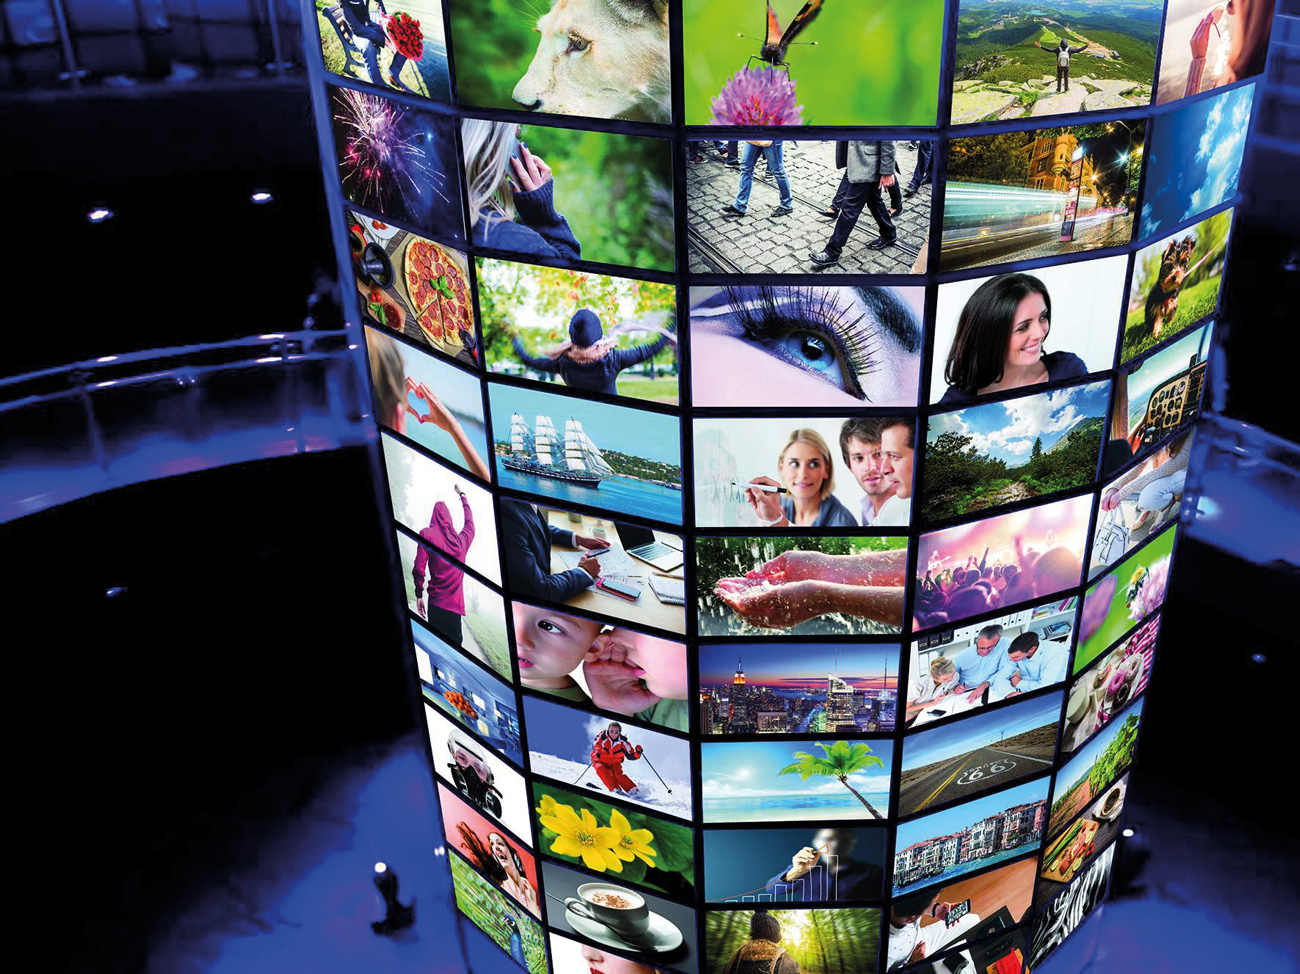 Nuove frontiere nel digital signage